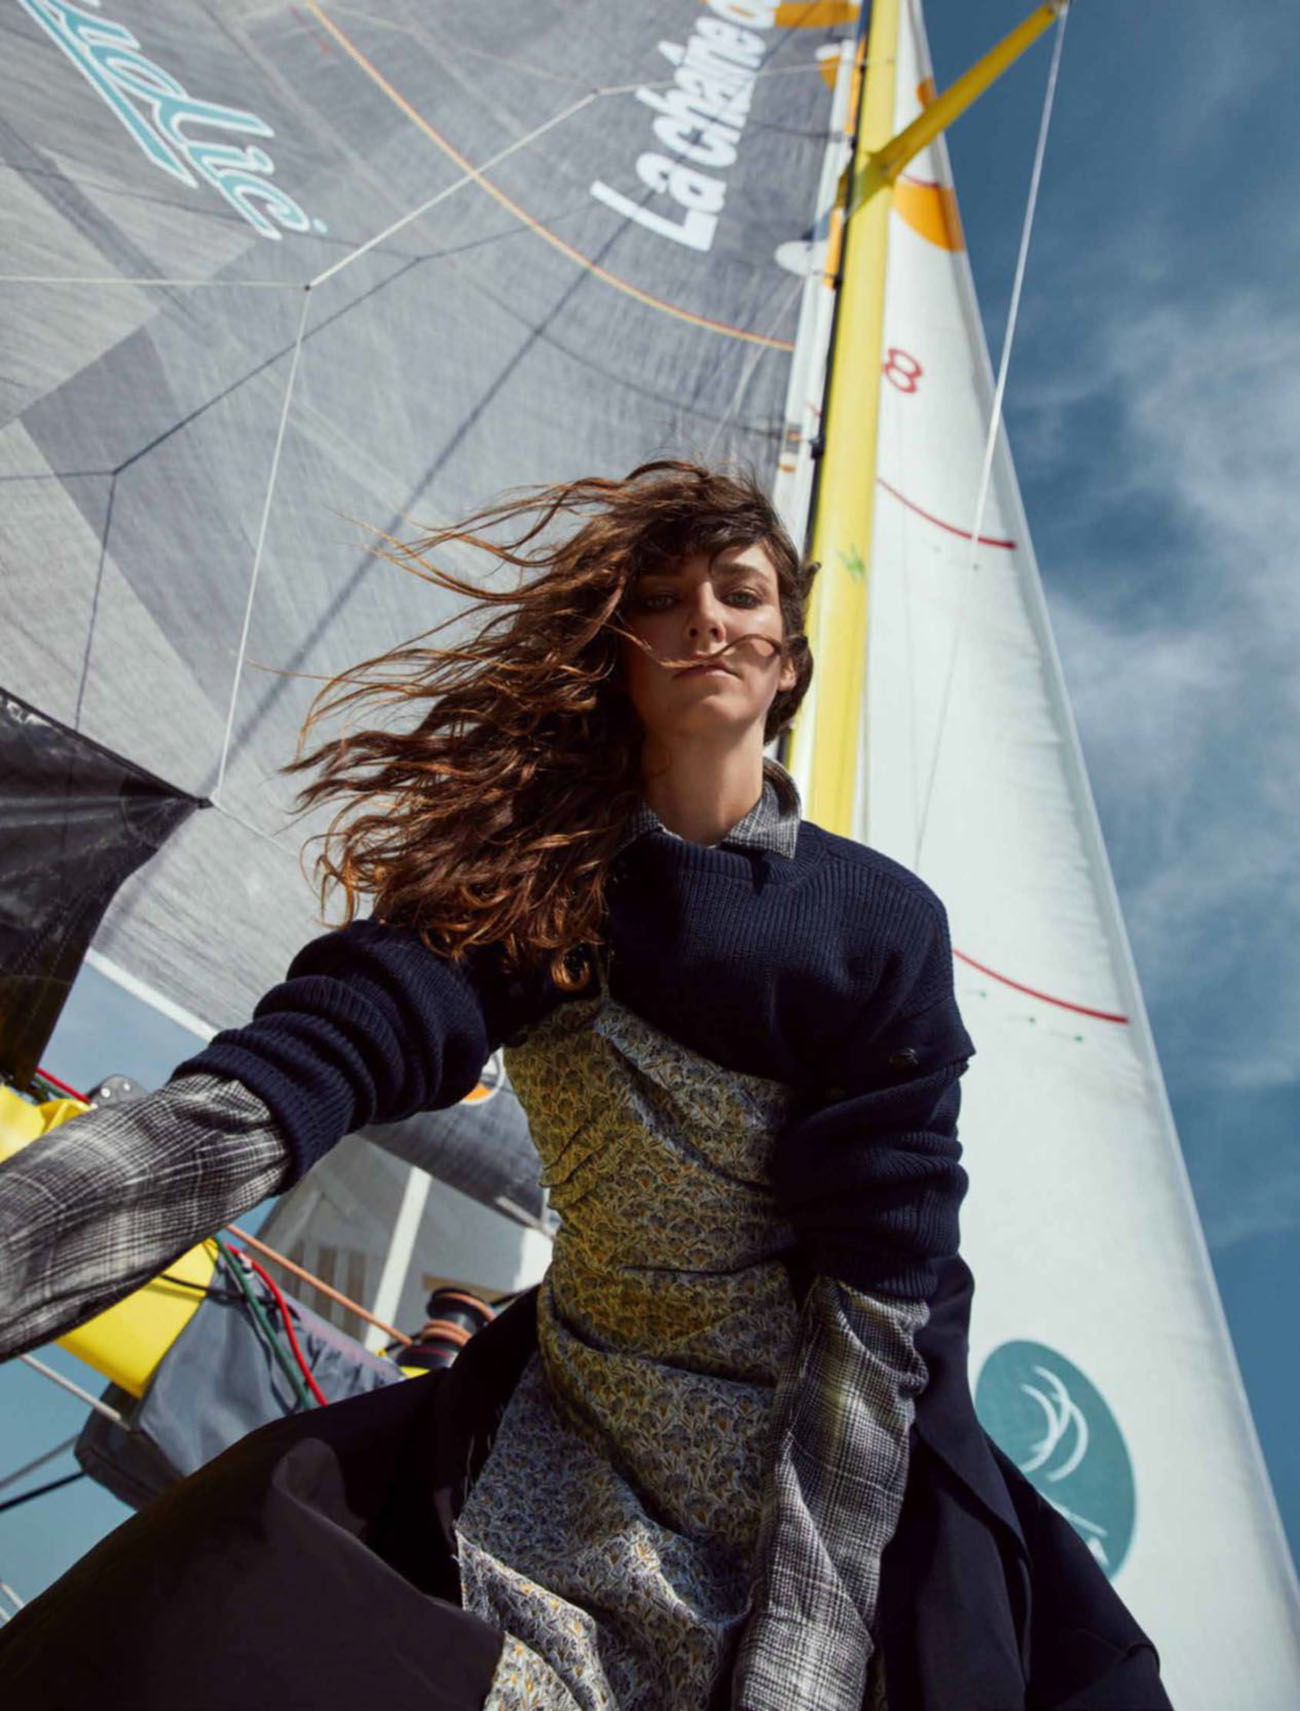 Cris Herrmann by Marc Philbert for Madame Figaro August 27th, 2021